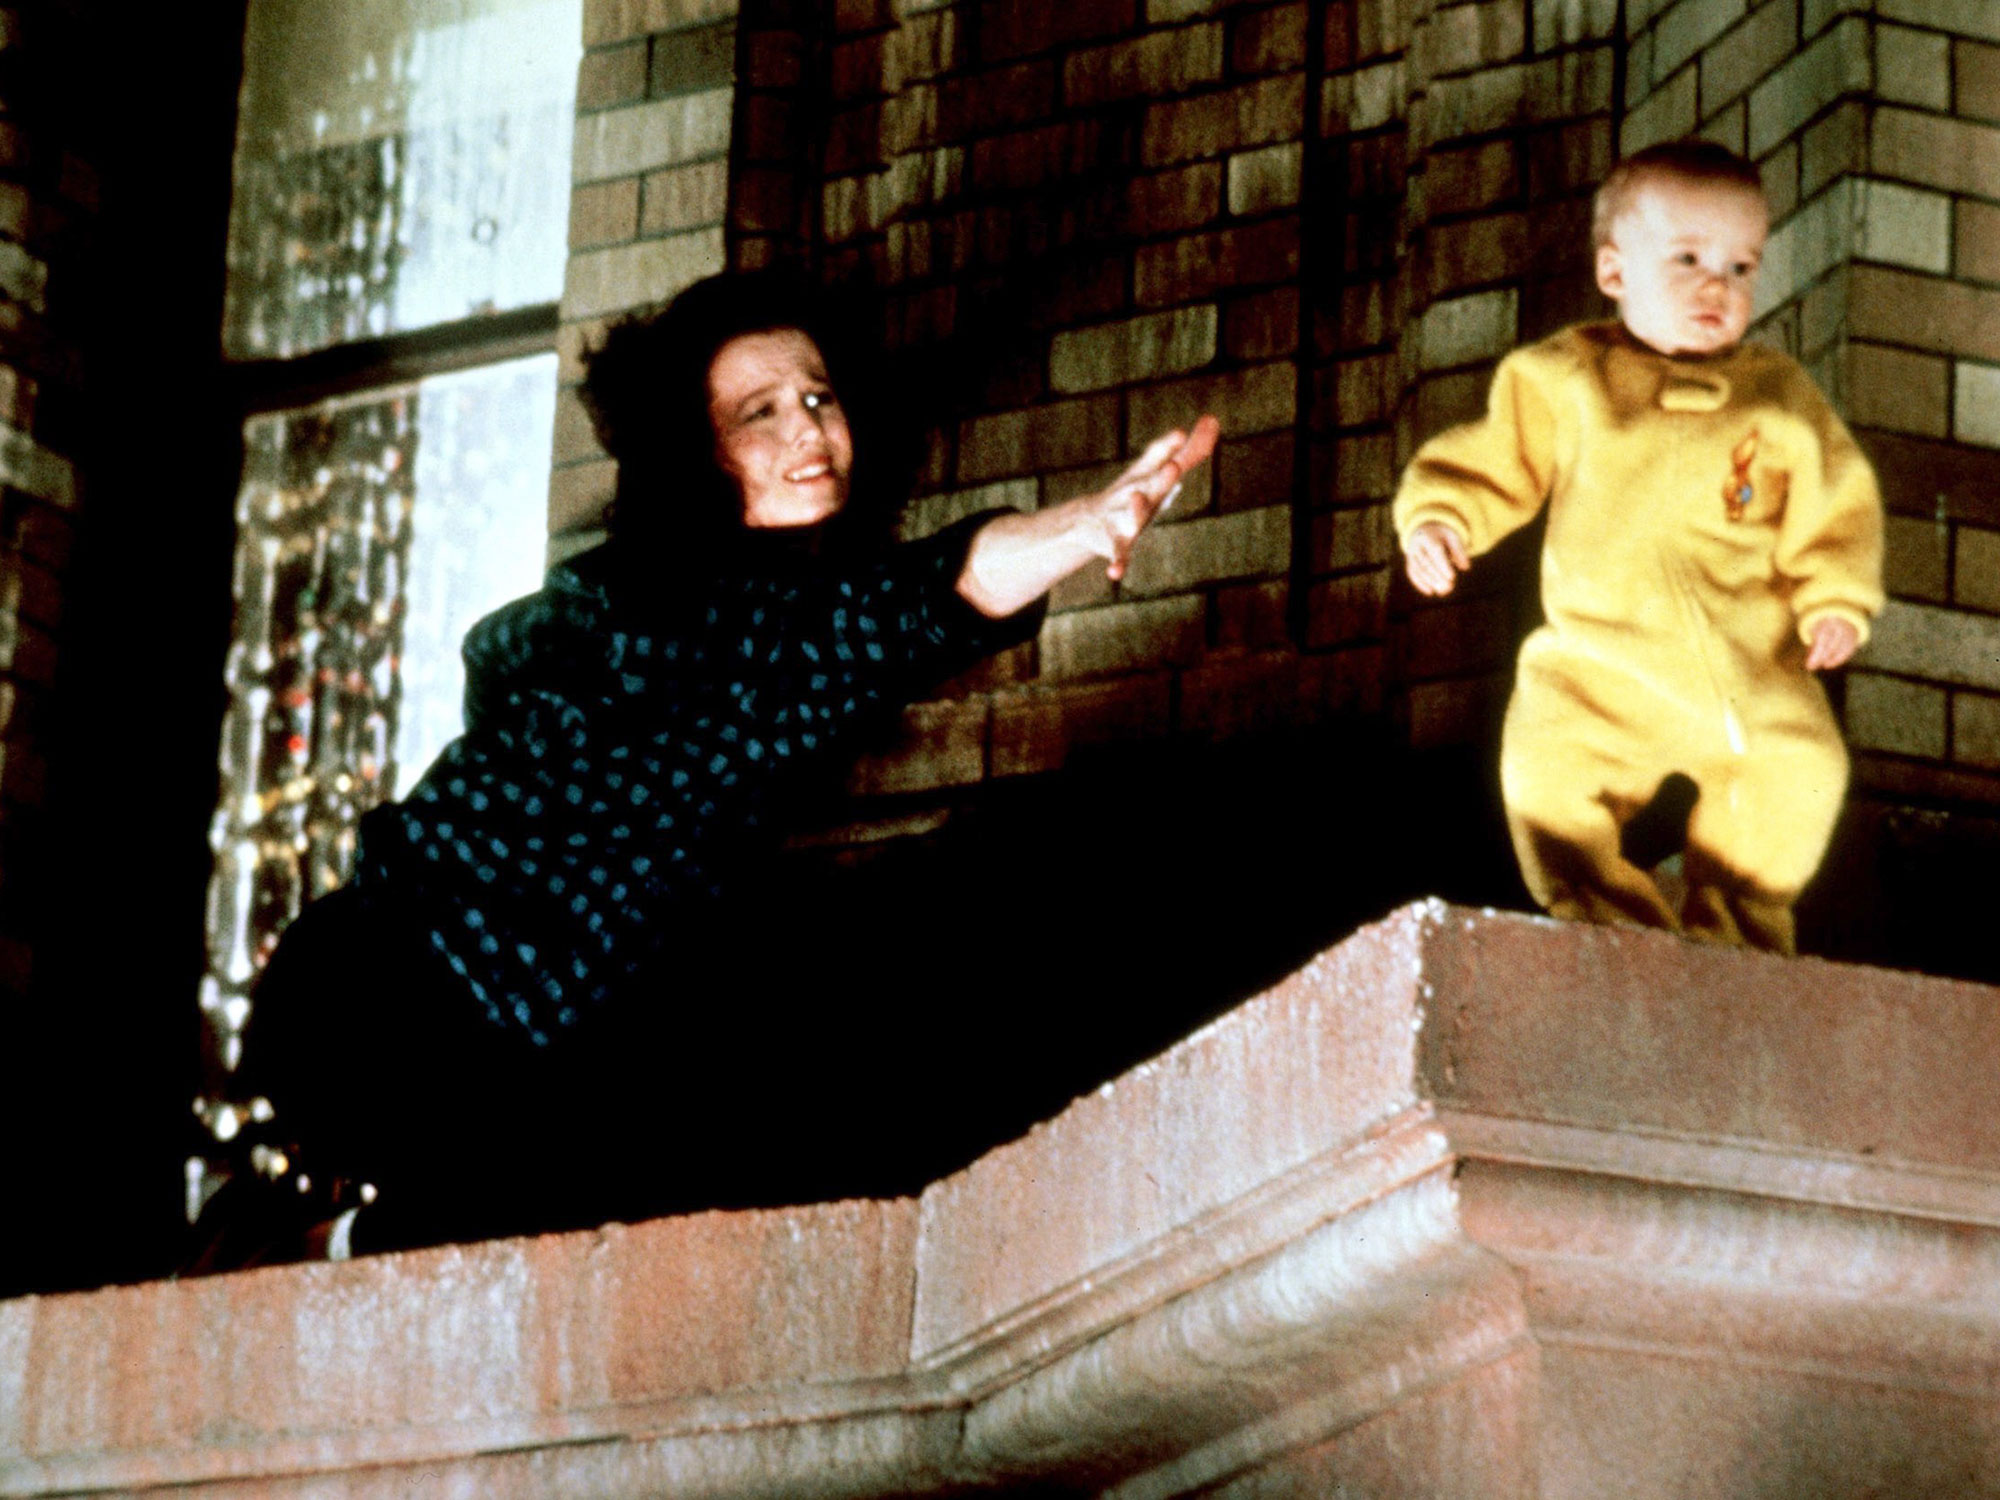 GHOSTBUSTERS II, Sigourney Weaver, 1989, (c) Columbia/courtesy Everett Collection